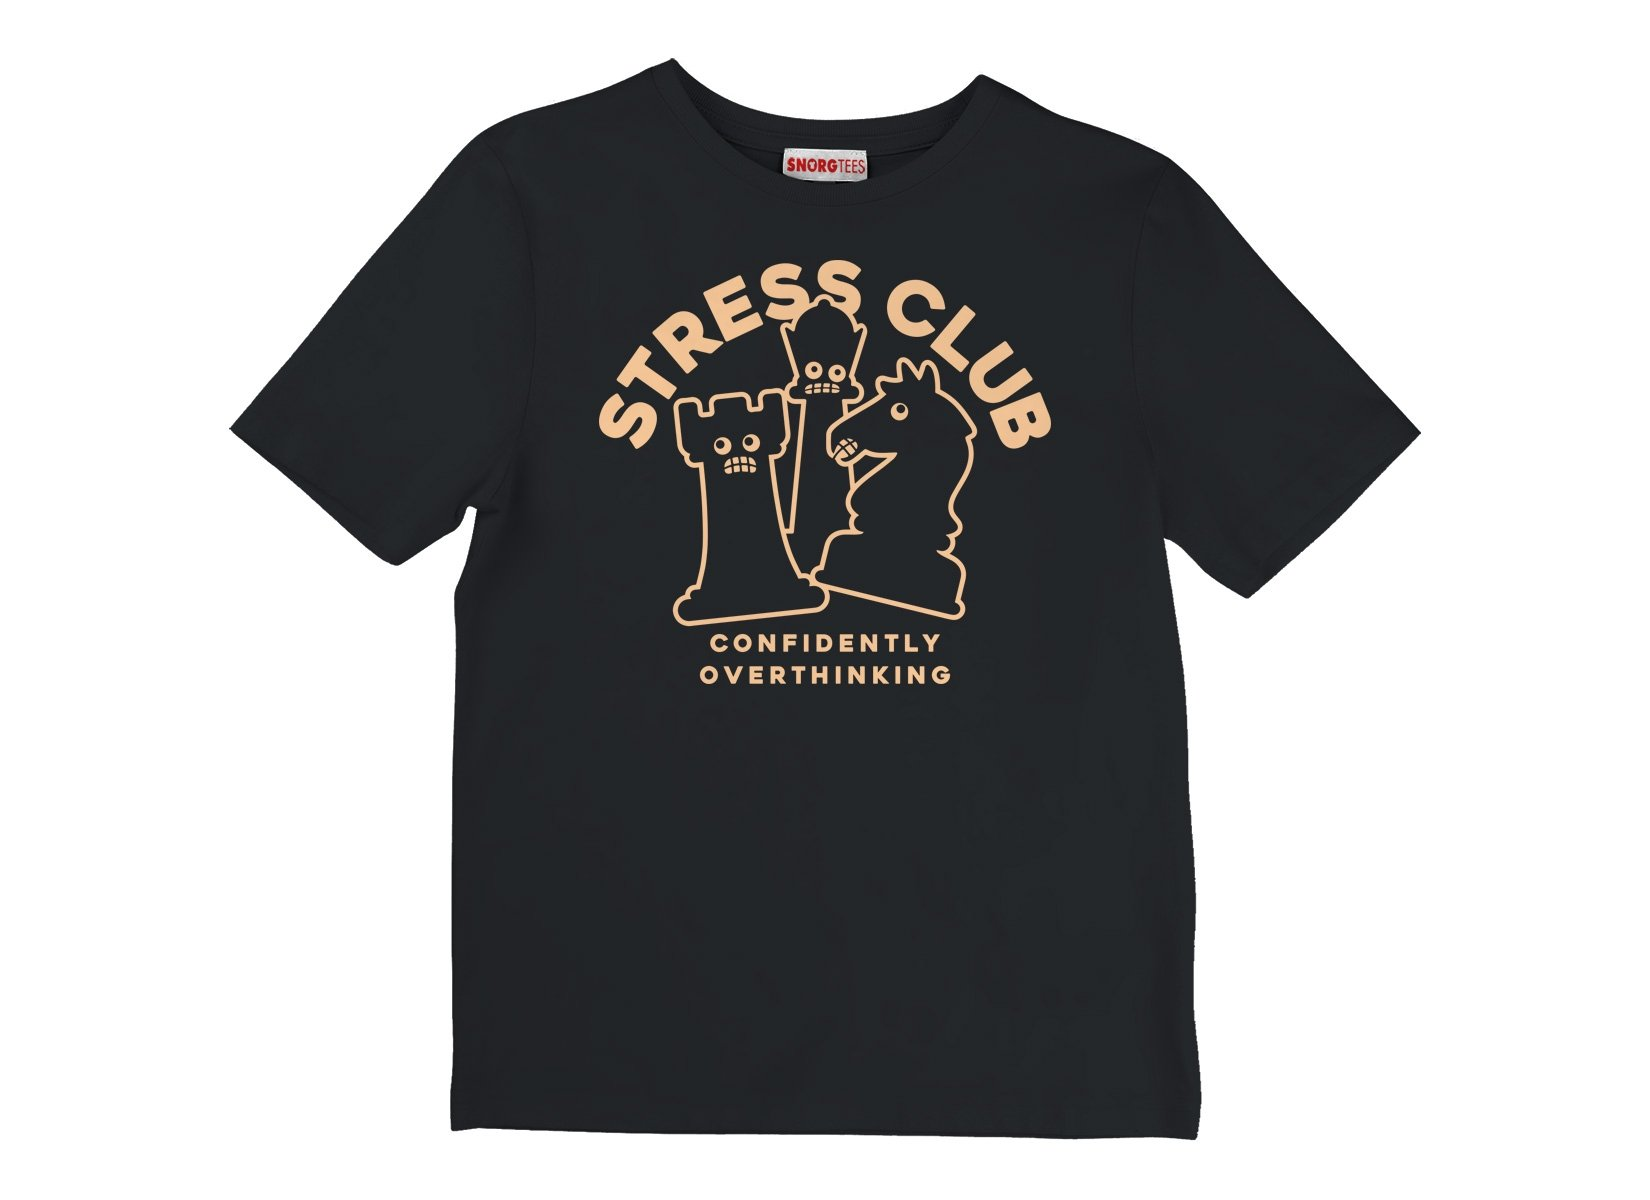 Stress Club on Kids T-Shirt